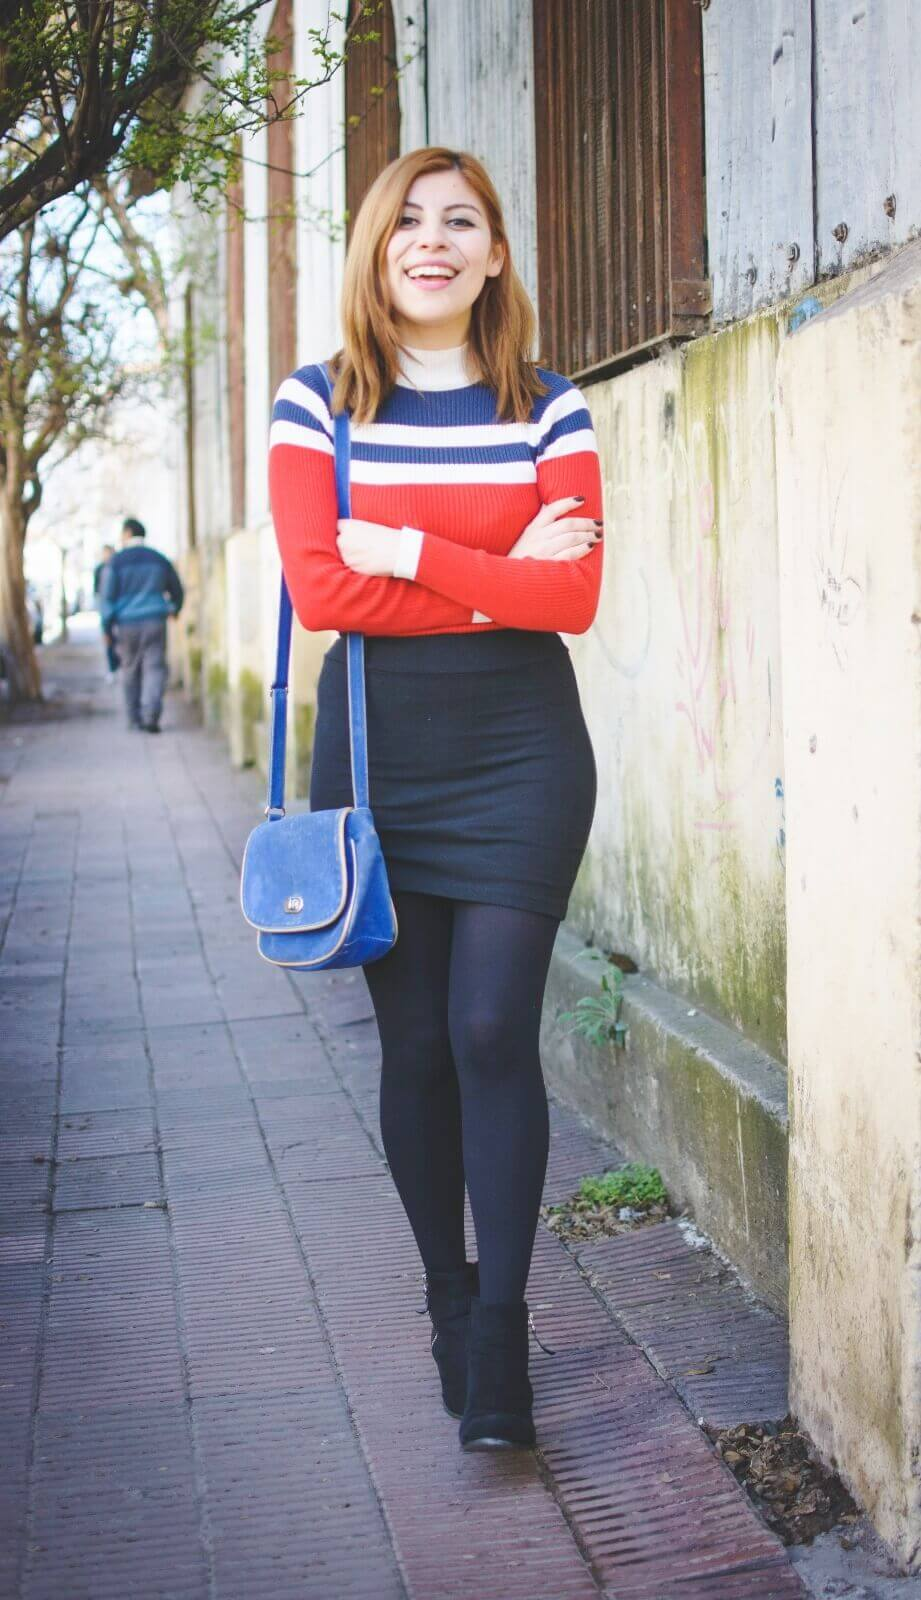 red-blue-and-white-striped-turtleneck-black-mini-skirt-tights-ankle-boots-deborah-ferrero-style-by-deb-fall-2016-trends02